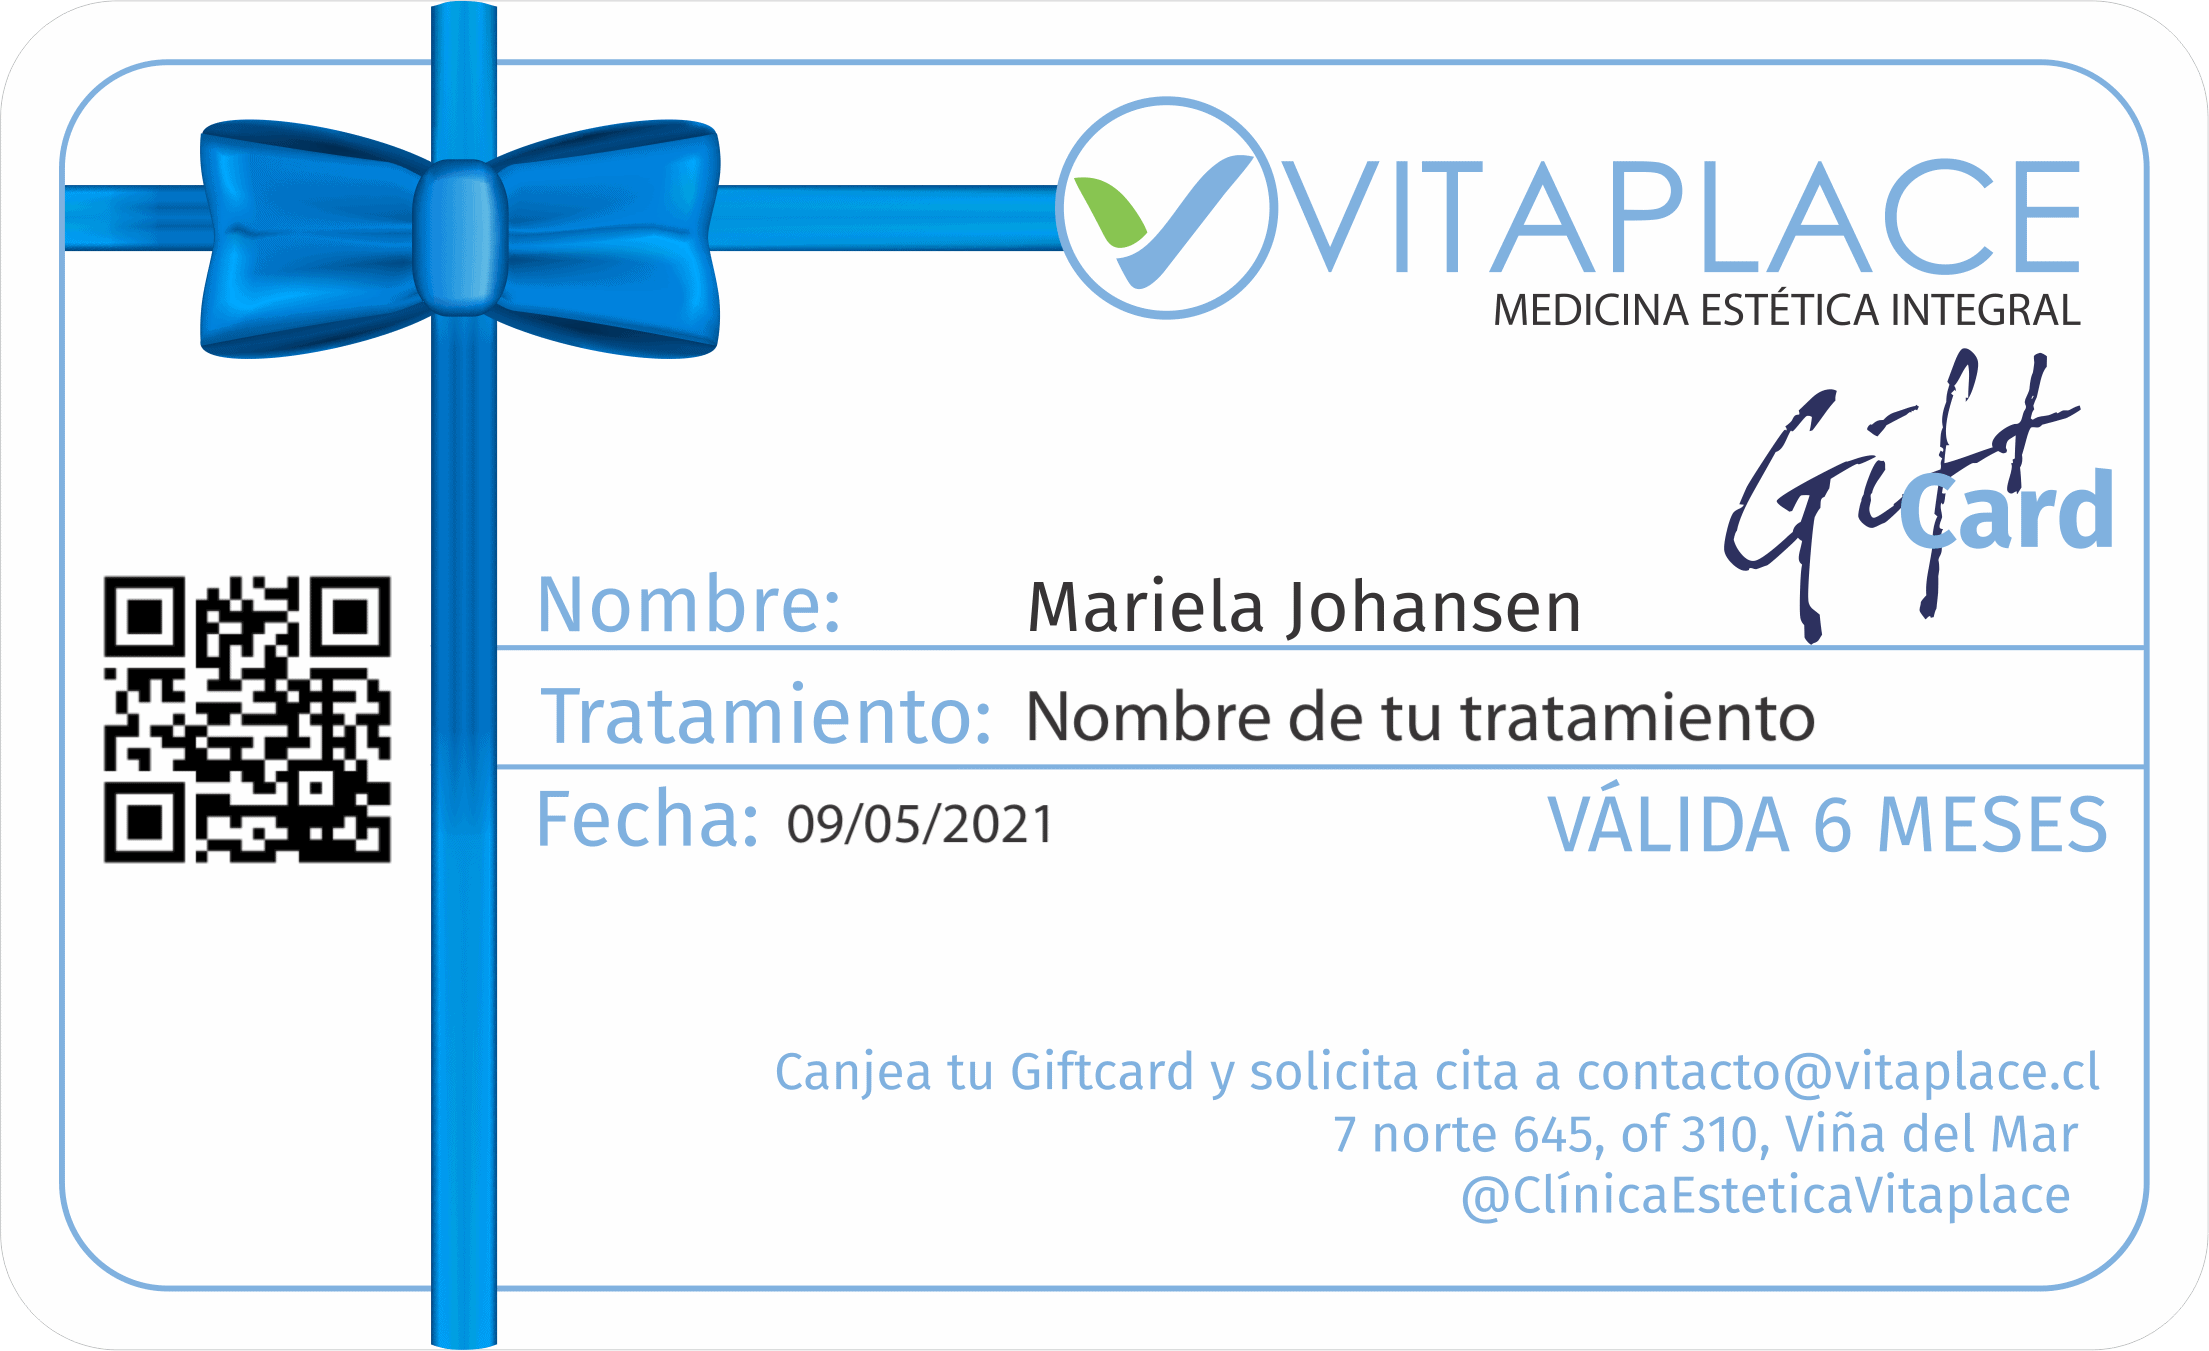 giftcard vitaplace